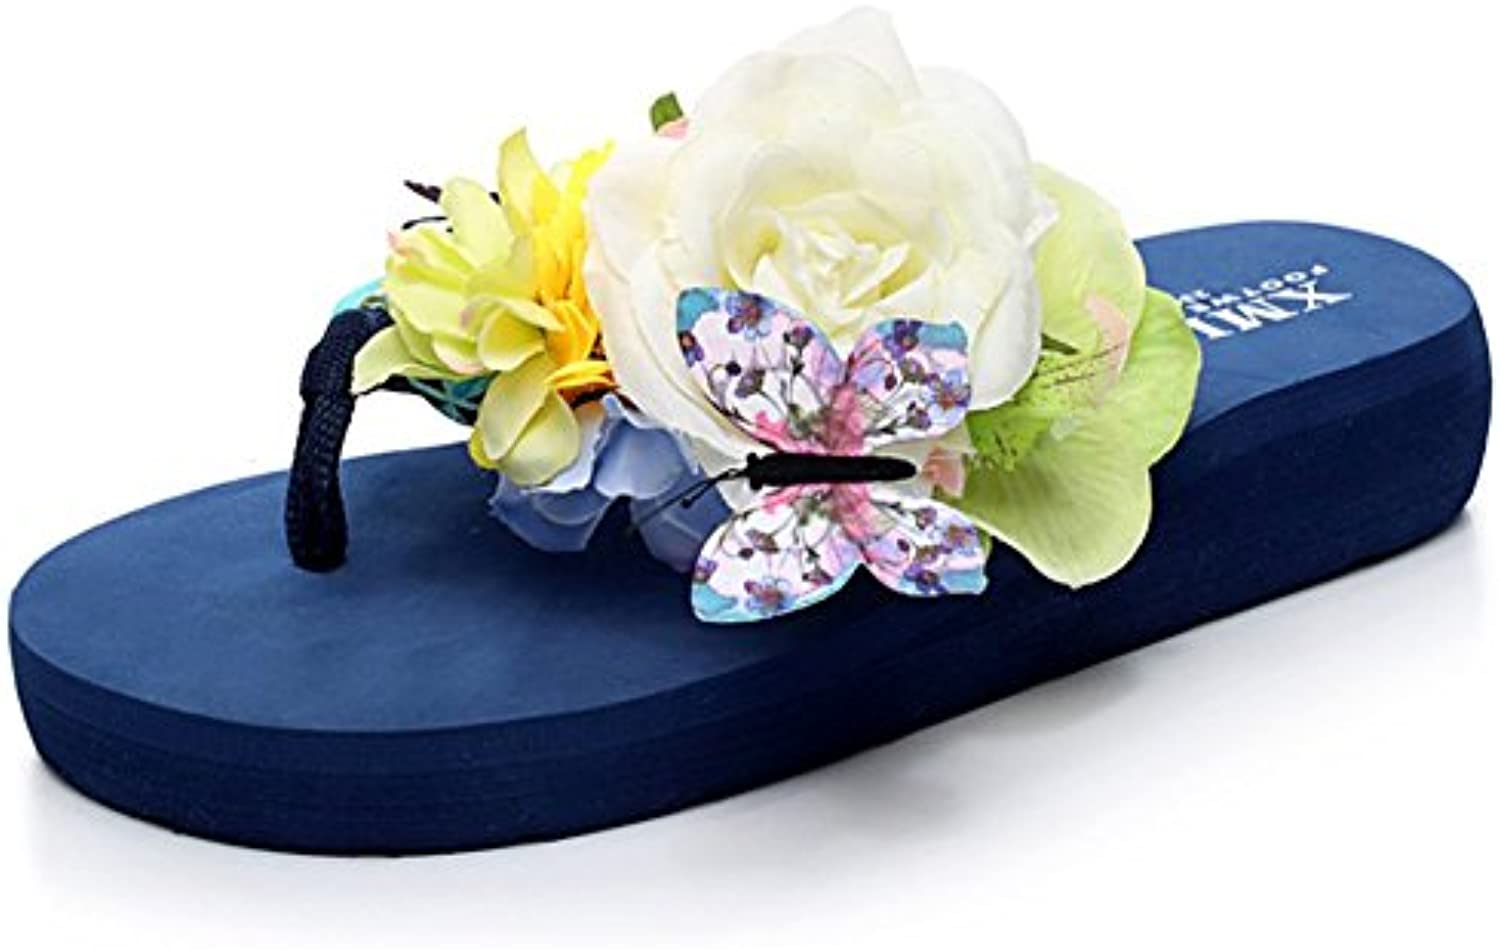 Sandals Summer Flip Flop Flop Flip Women Seaside Holiday Flowers Thick Bottom Muffin Slippers,Blue,42 0c5341